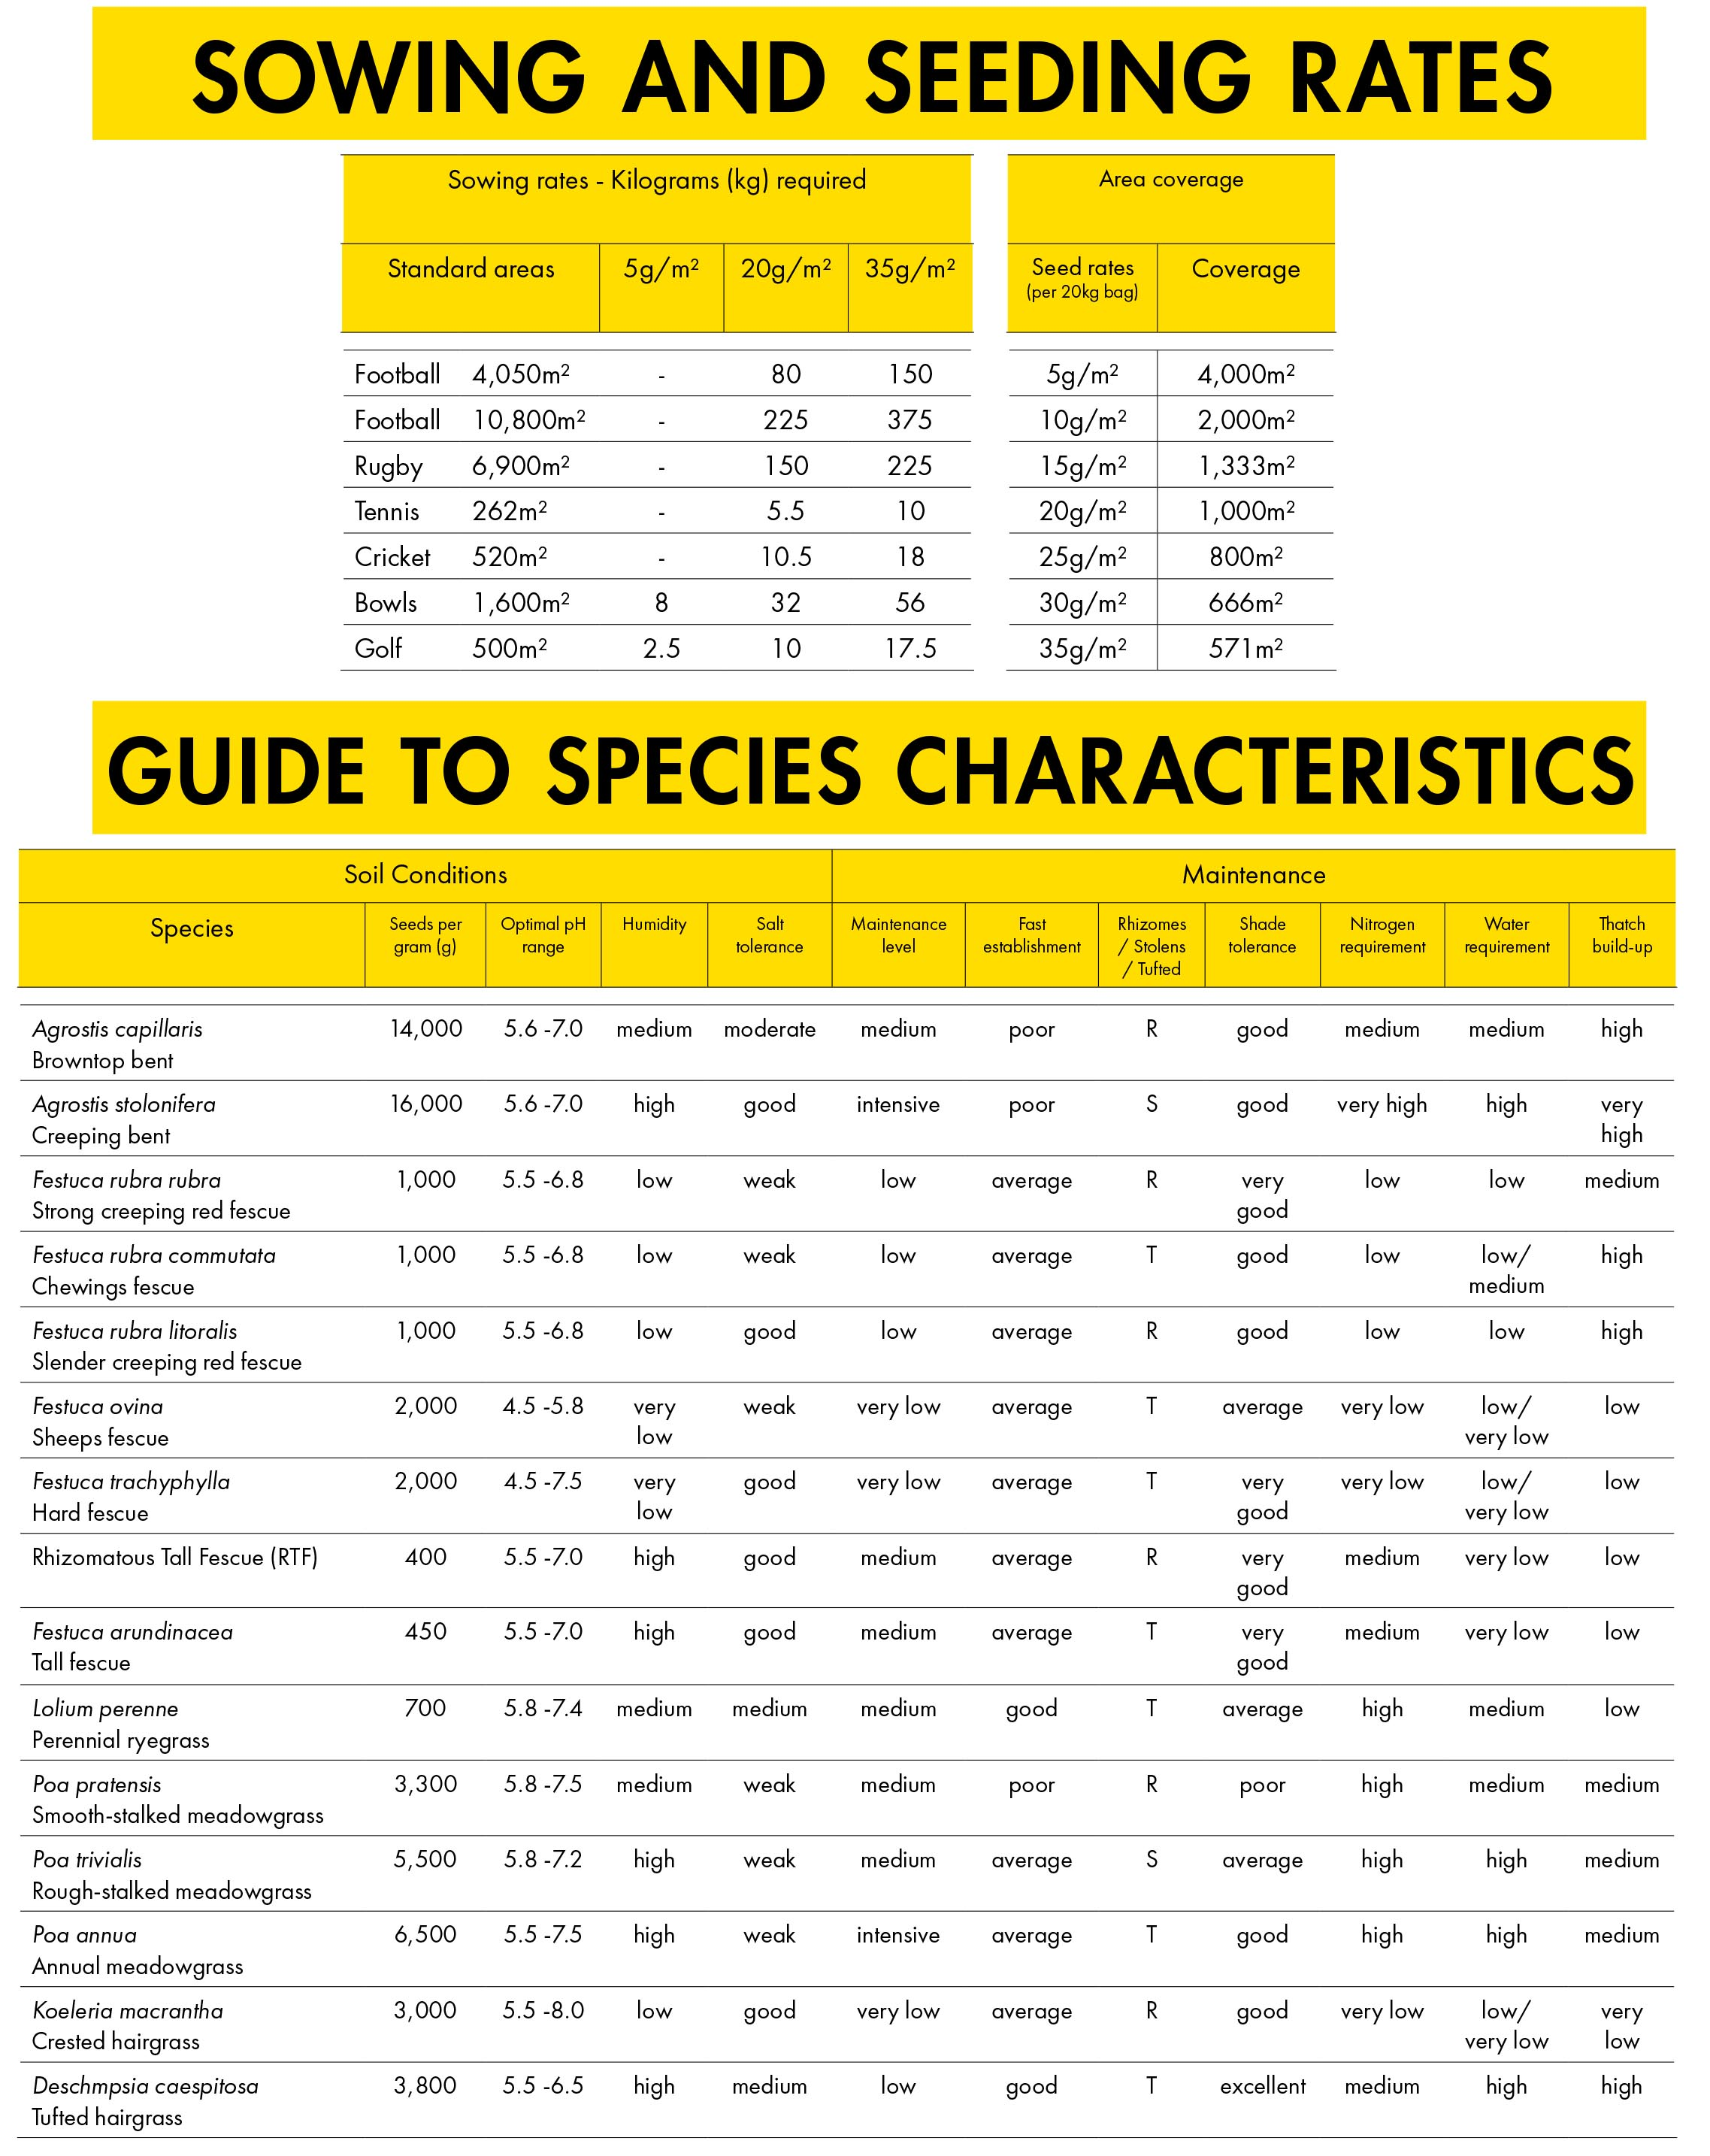 Sowing and Seed Rates and Characteristics